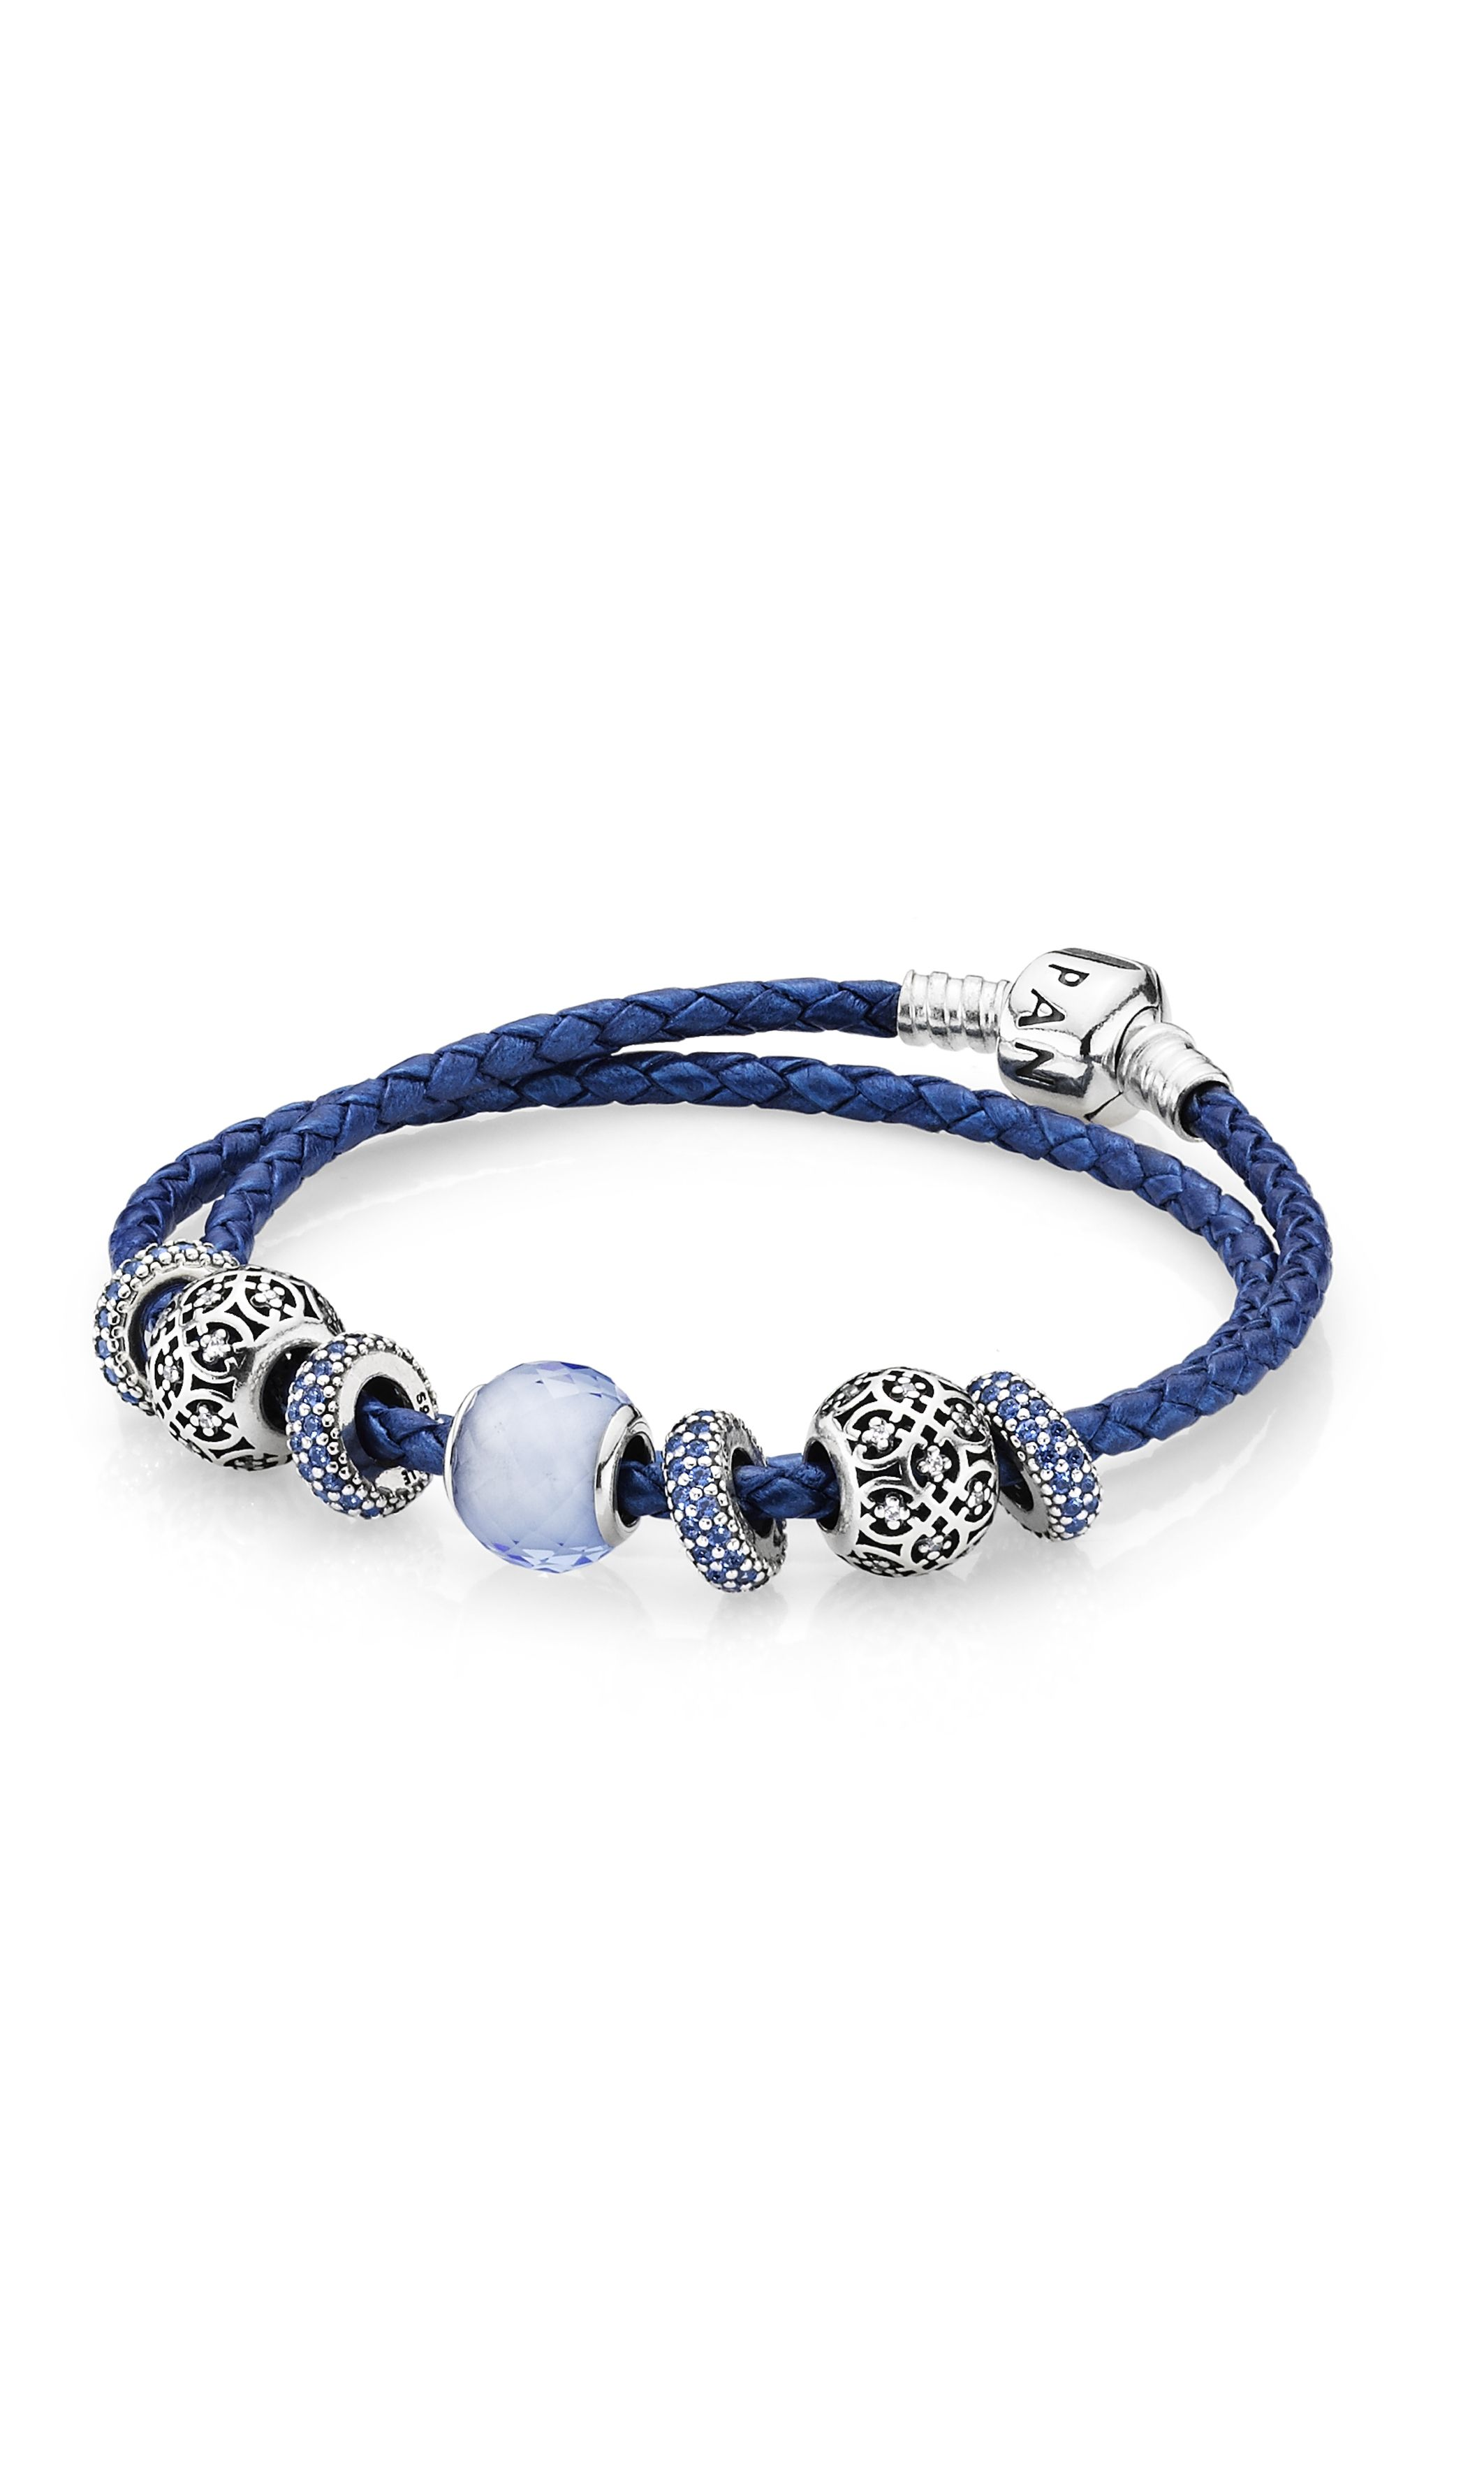 bracelet leather the matching charms pin shades with charm pandora metallic woven new blue style pandorabracelet in